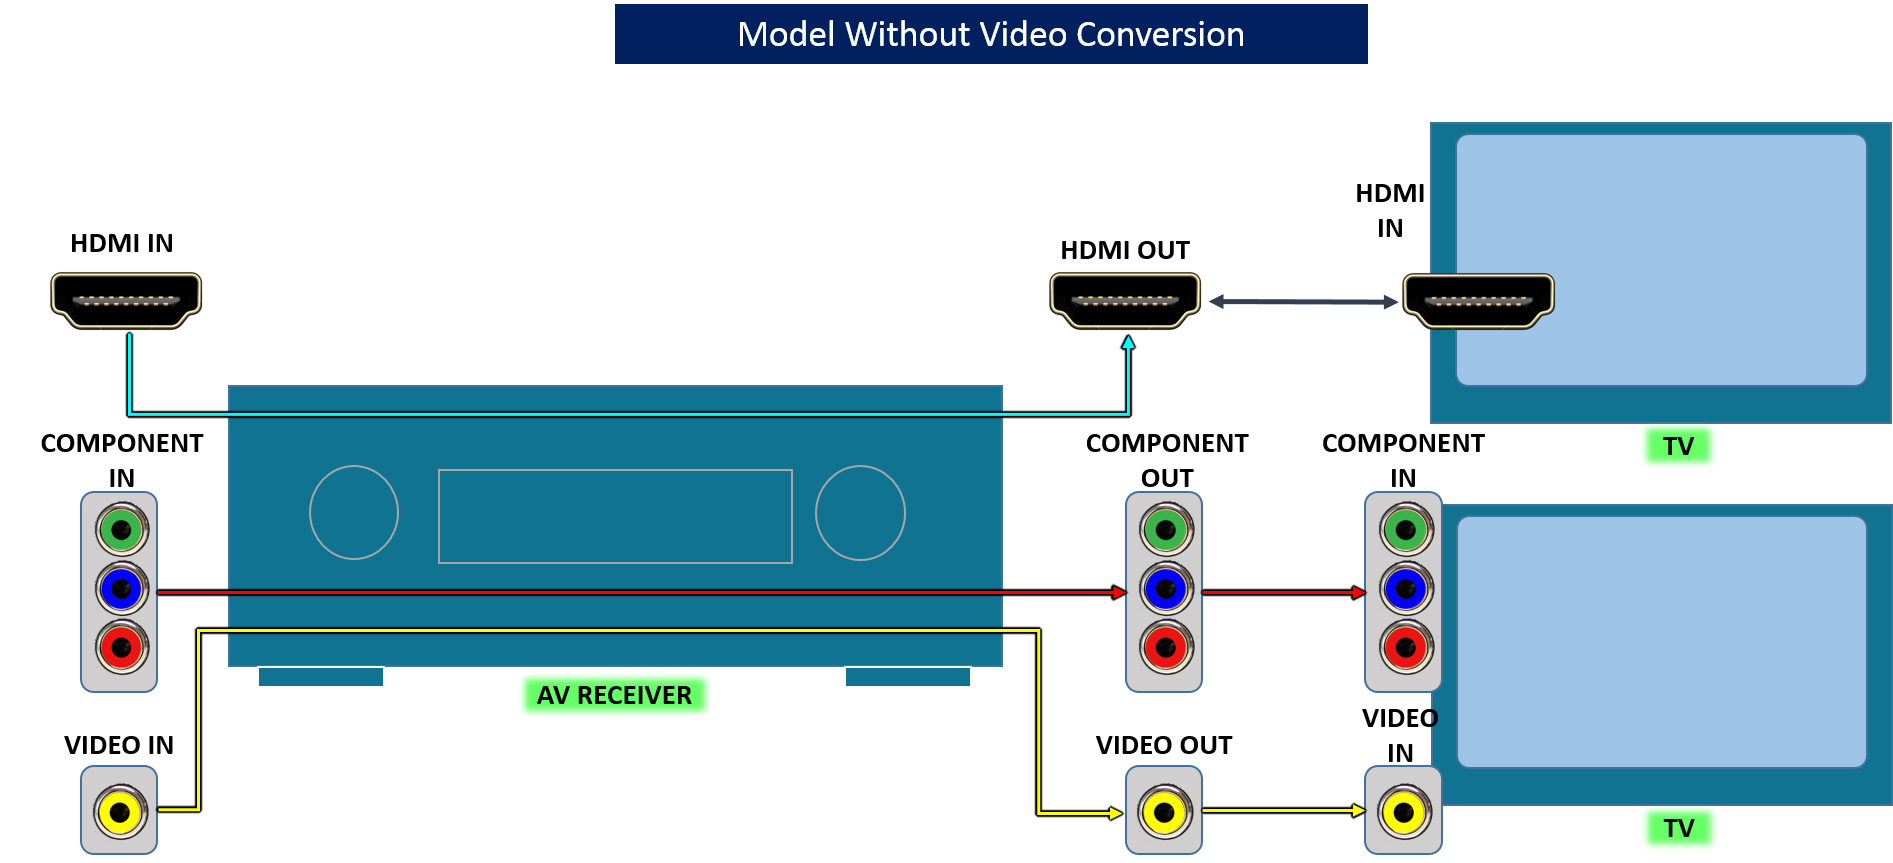 Av Receivers With Video Conversion Capabilities Wiring Diagrams Of Tv And Home Stereo Components Surround Receiver Without These Only Offer Hdmi To Pass Through No Analog